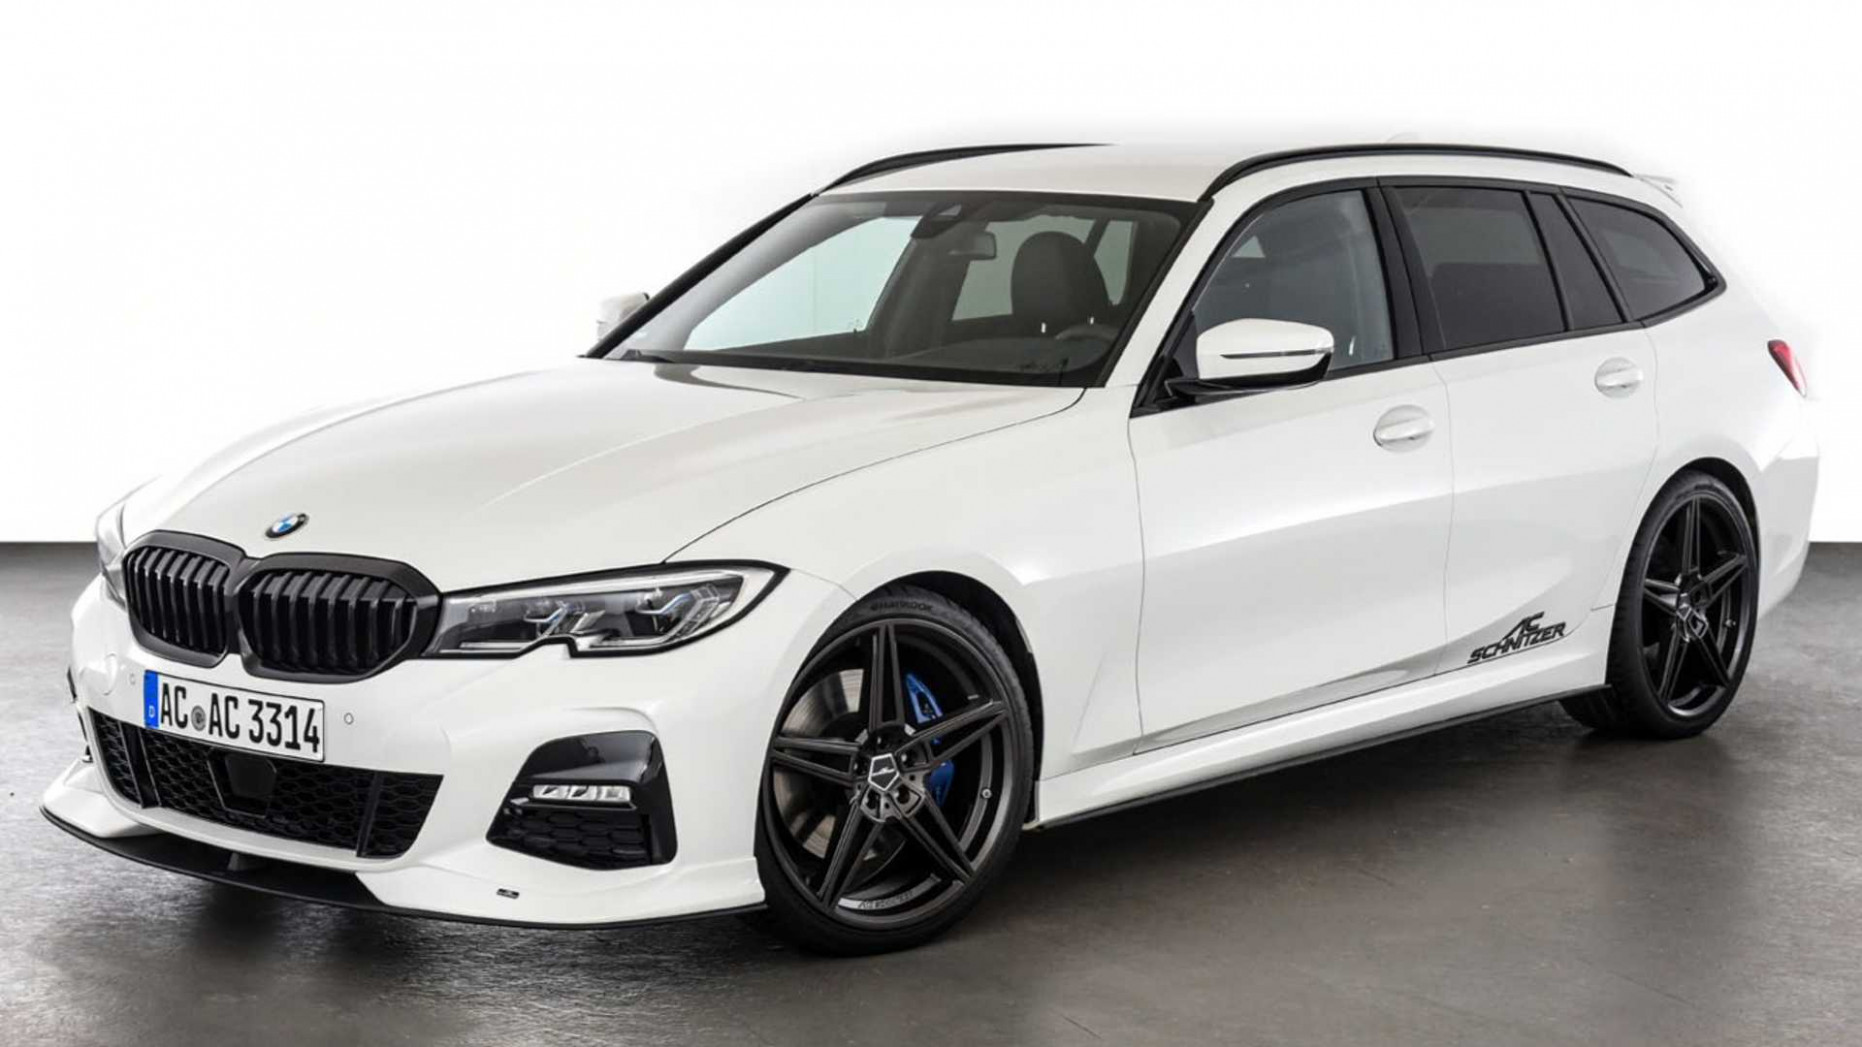 7 BMW 7 Series Touring By AC Schnitzer Refines The Sports Wagon